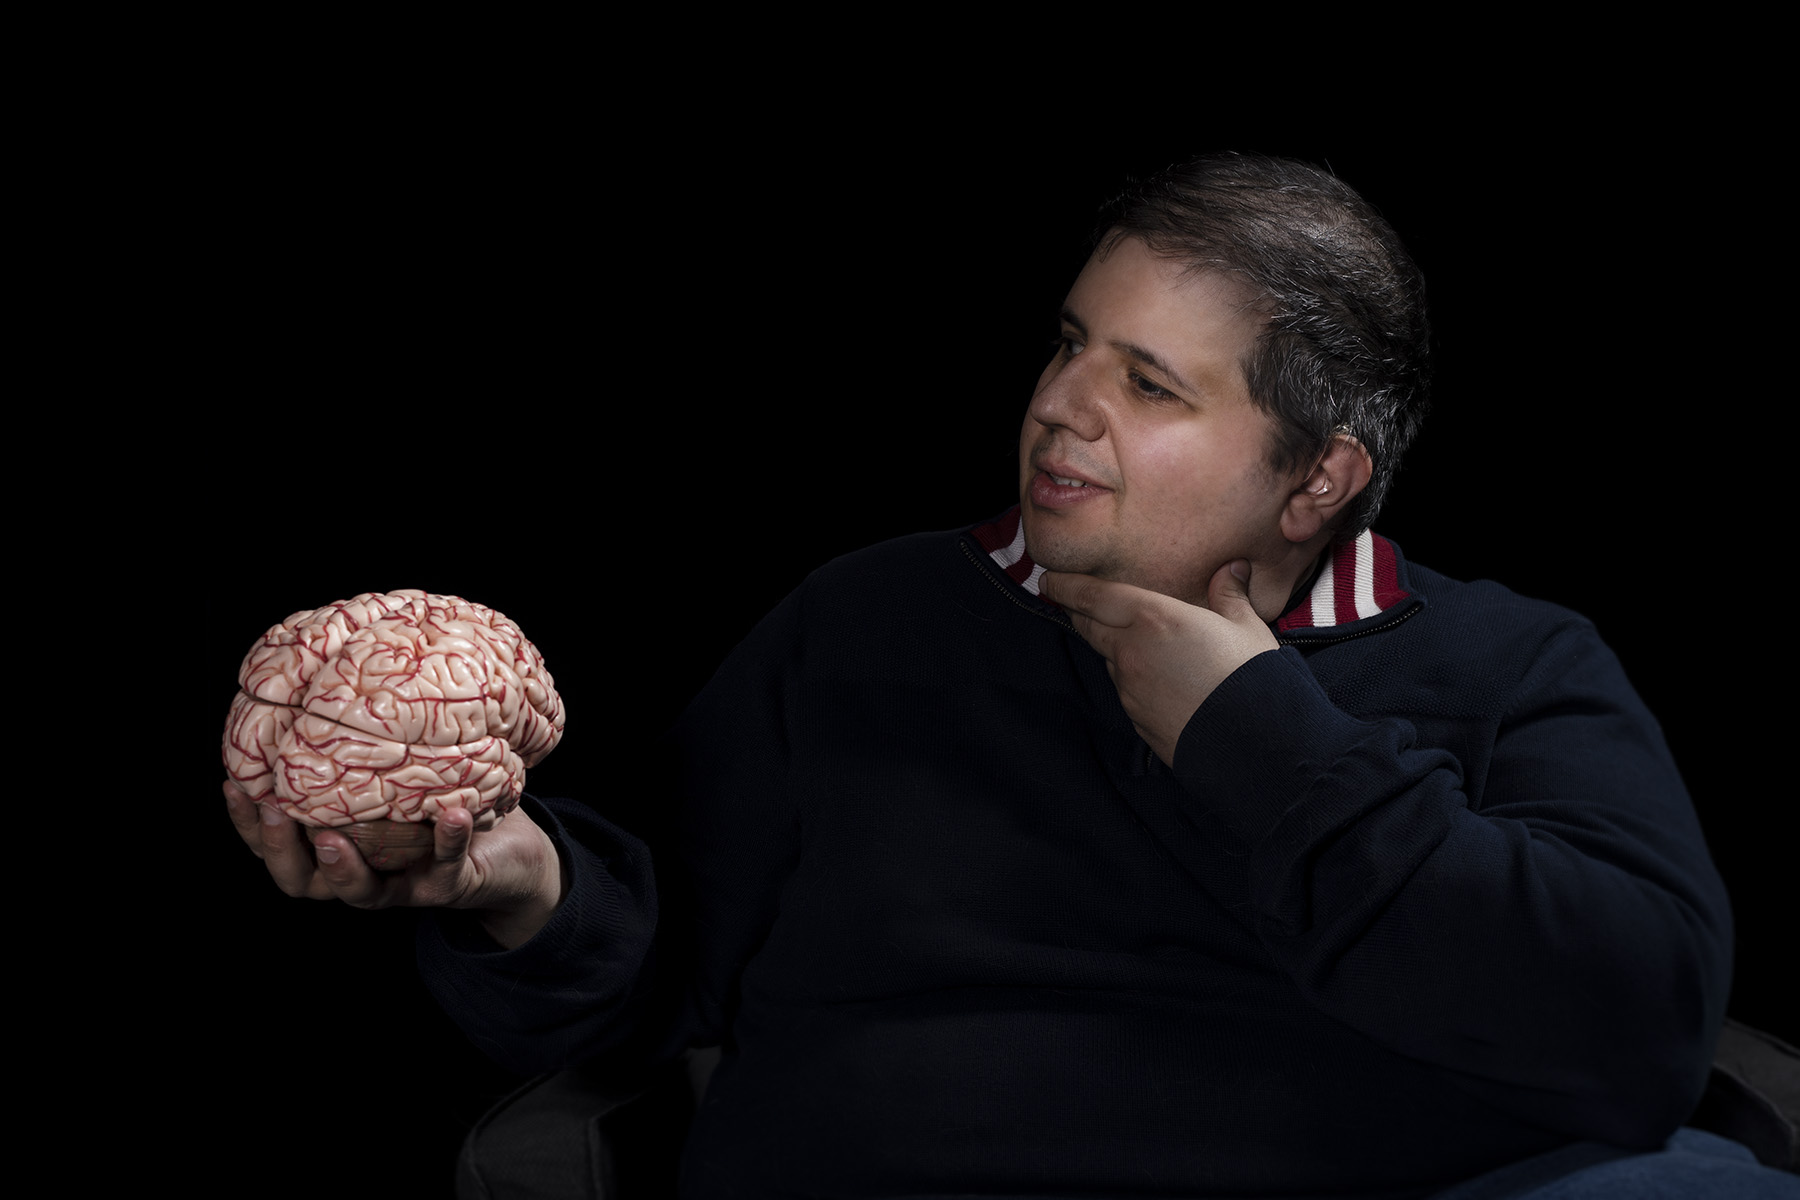 Christopher Schiafone holds a model of the human brain